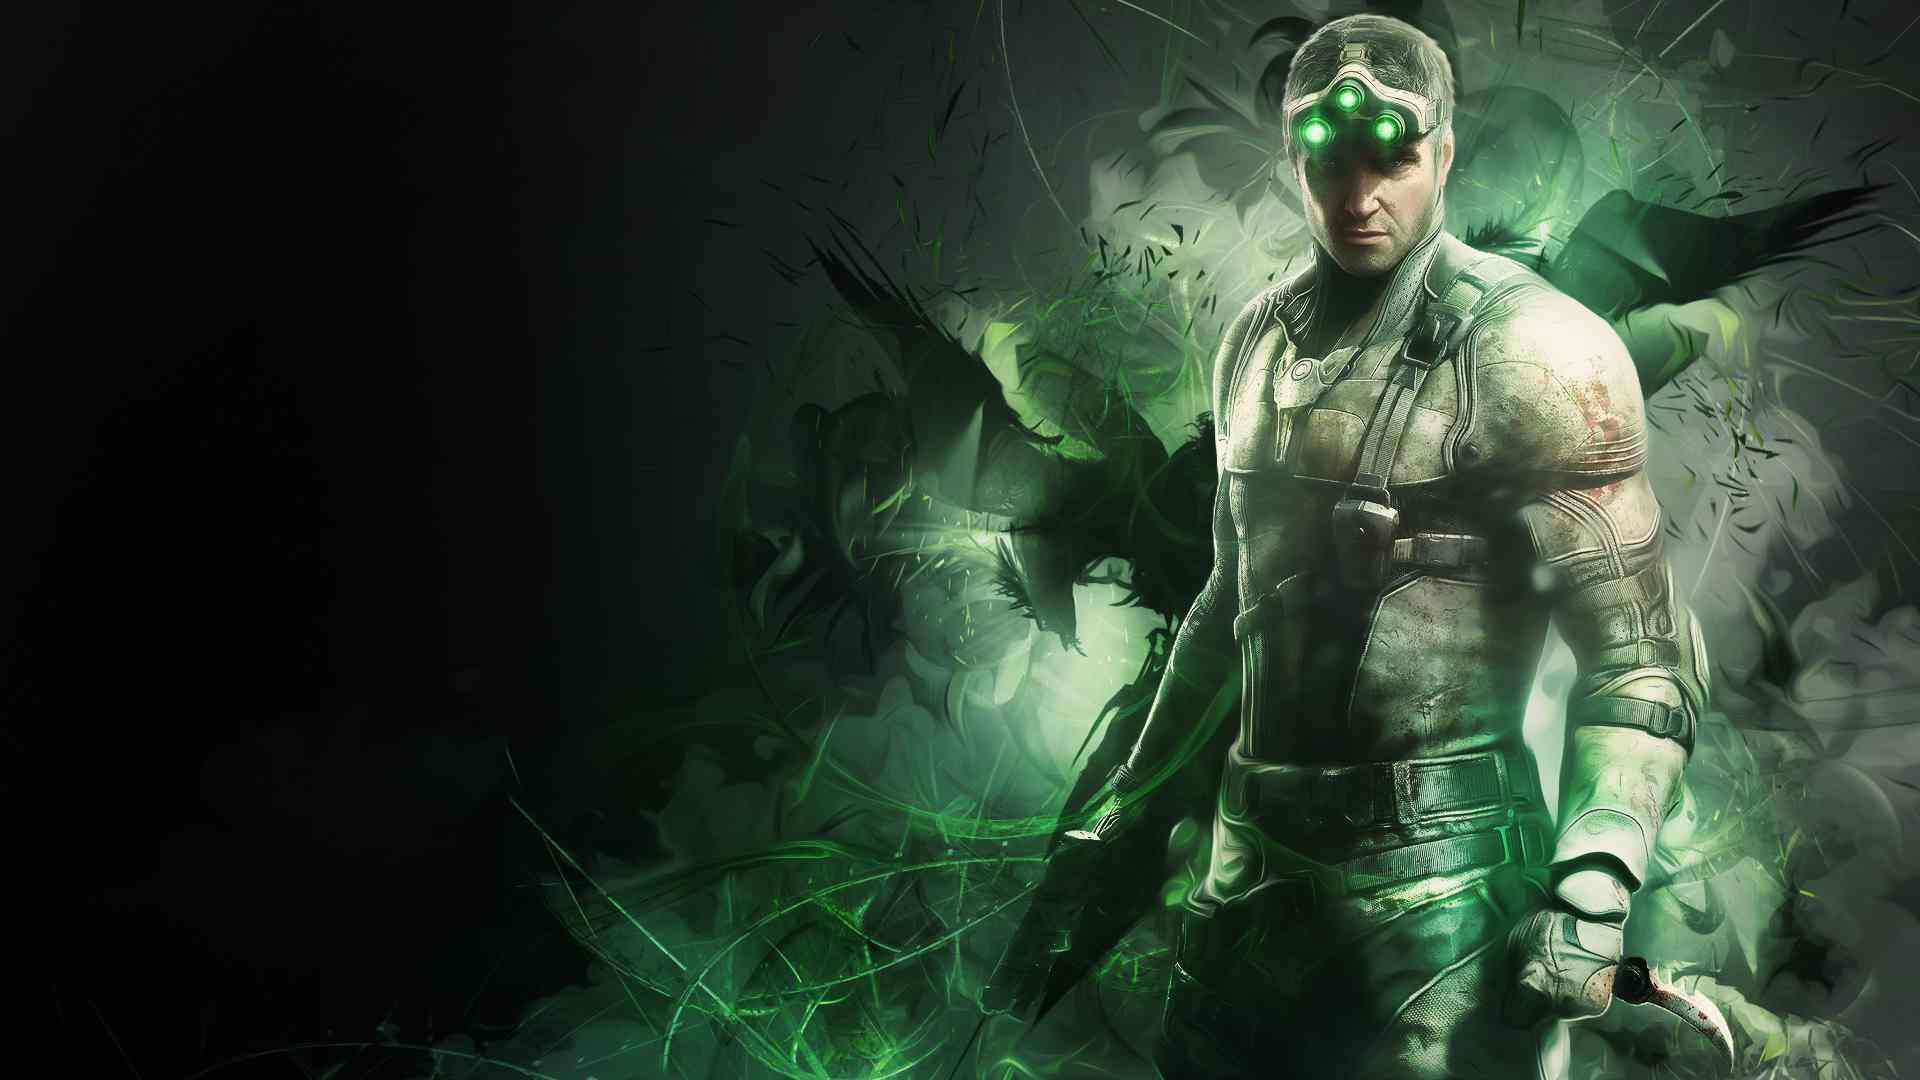 ws_Splinter_Cell_Blacklist_HD_1920x1080